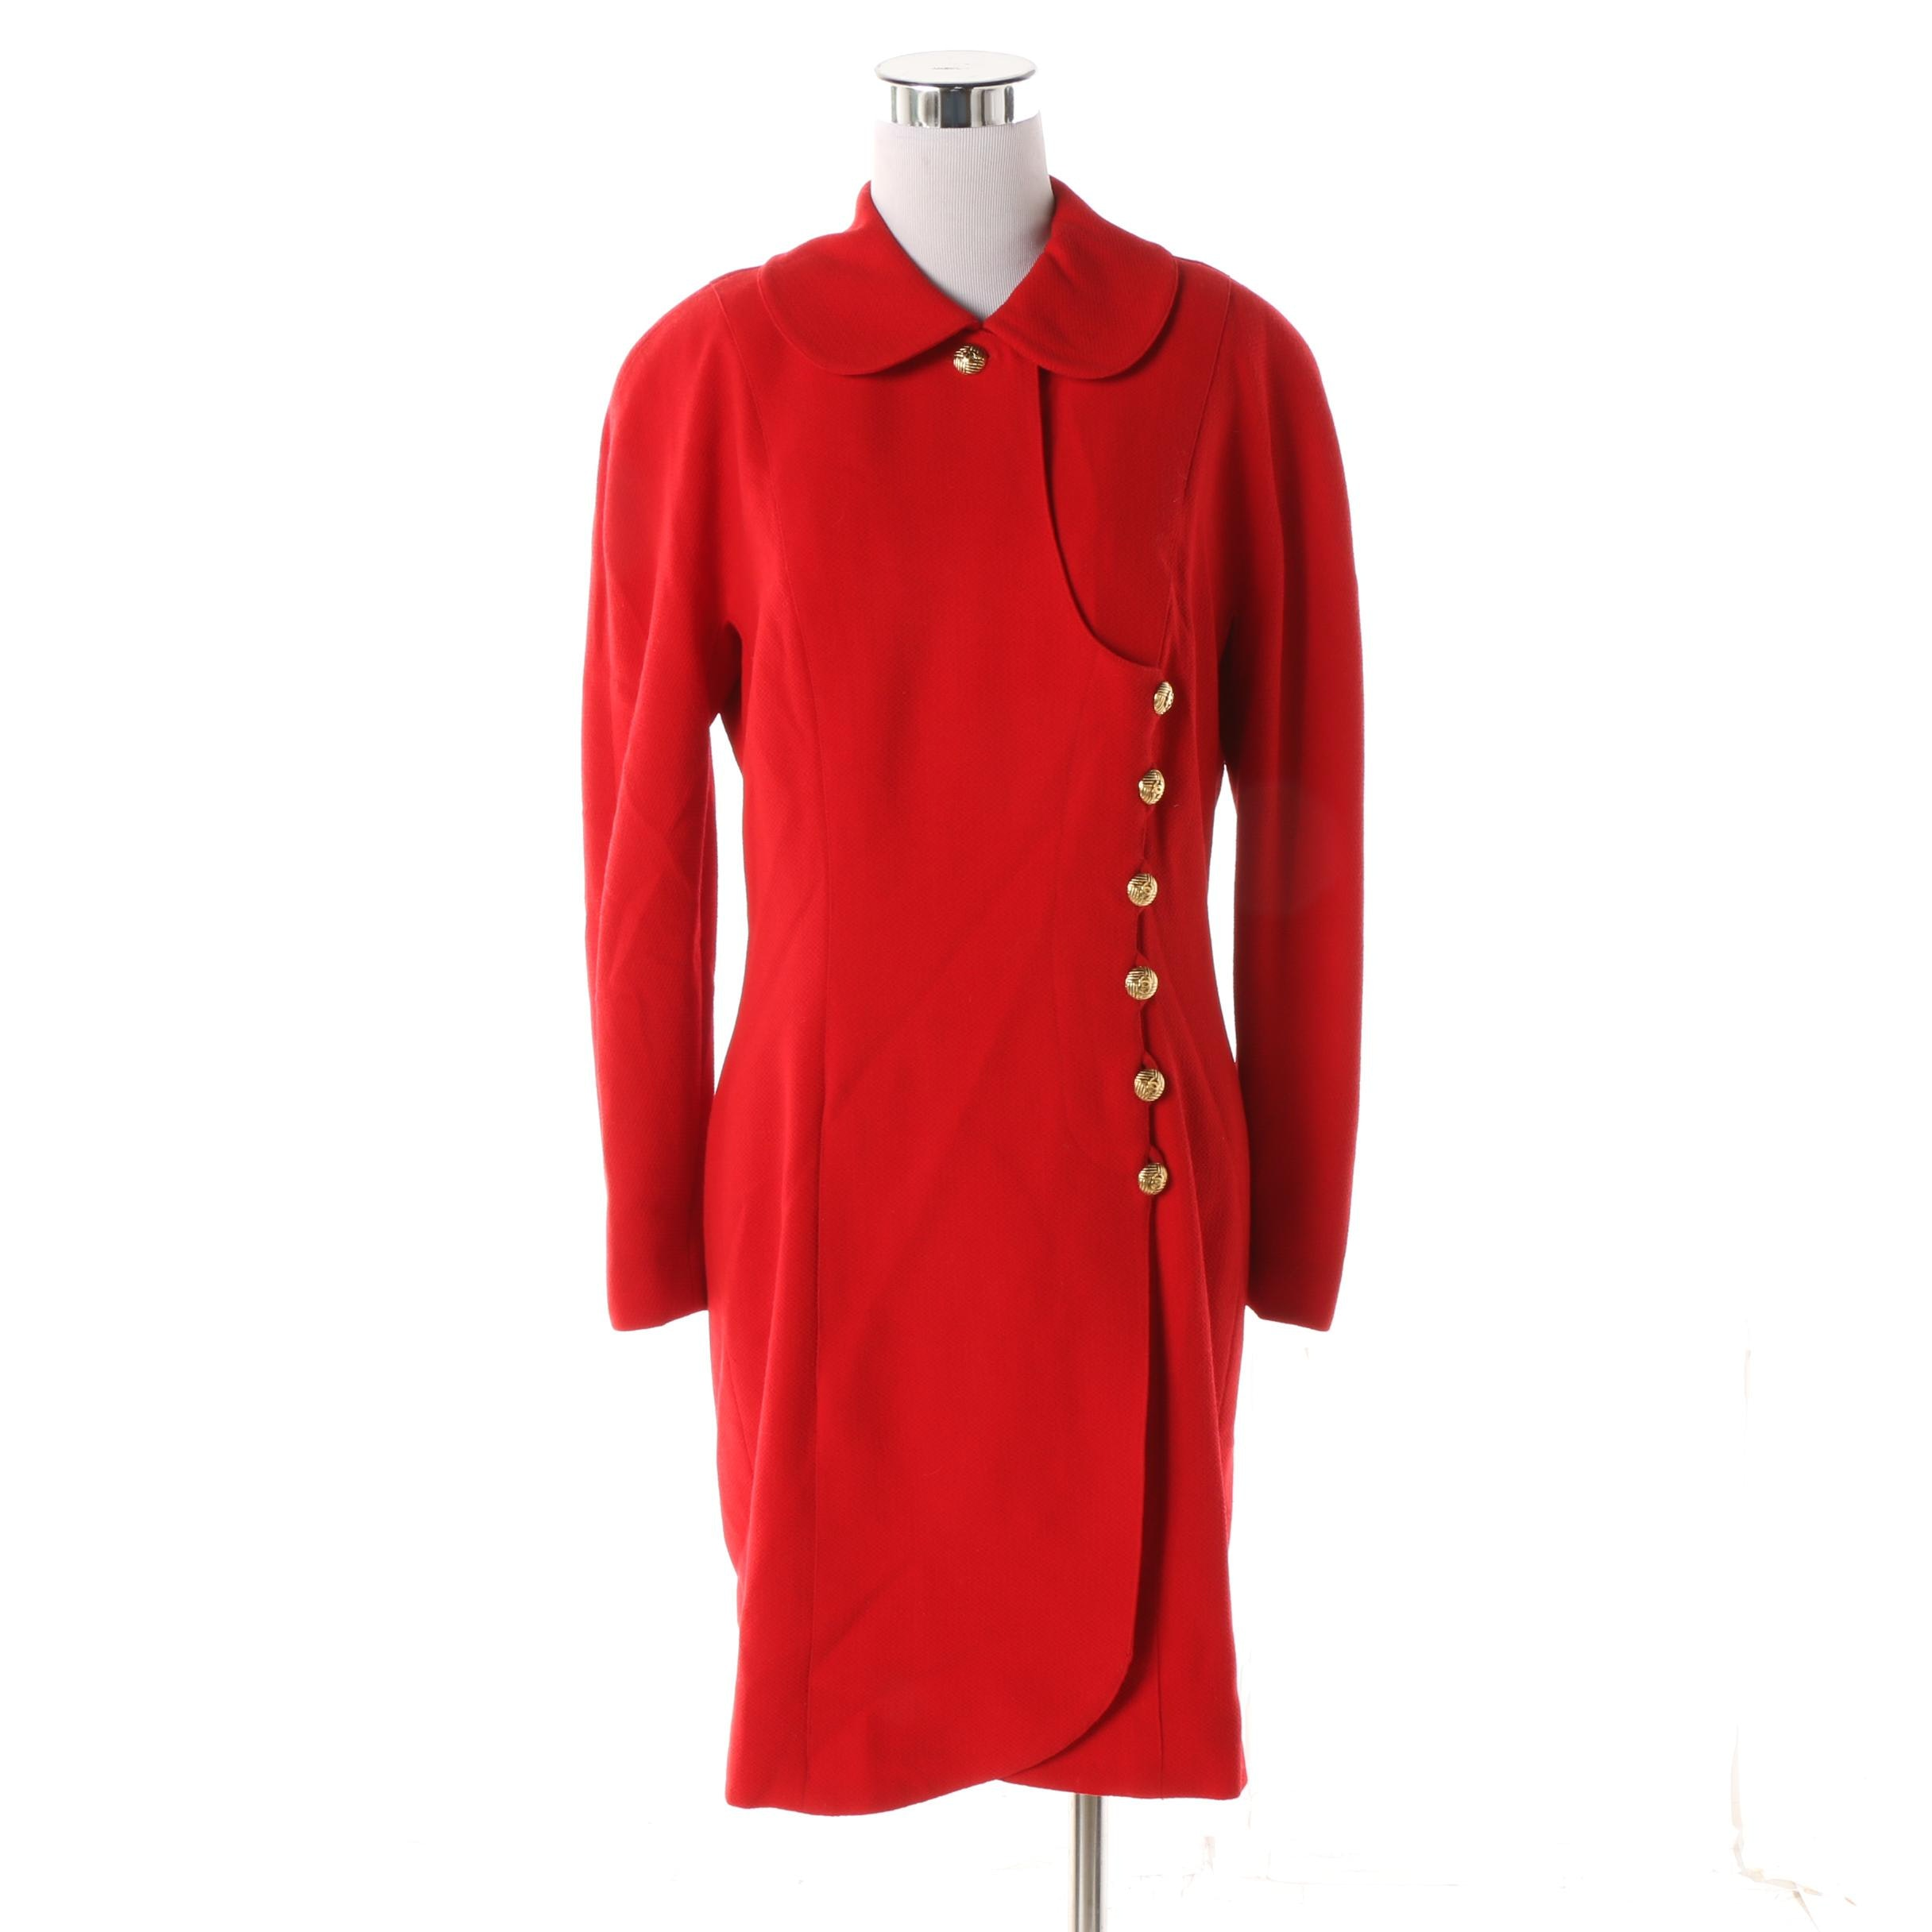 Women's Circa 1980s Chanel Boutique Red Wool Day Dress